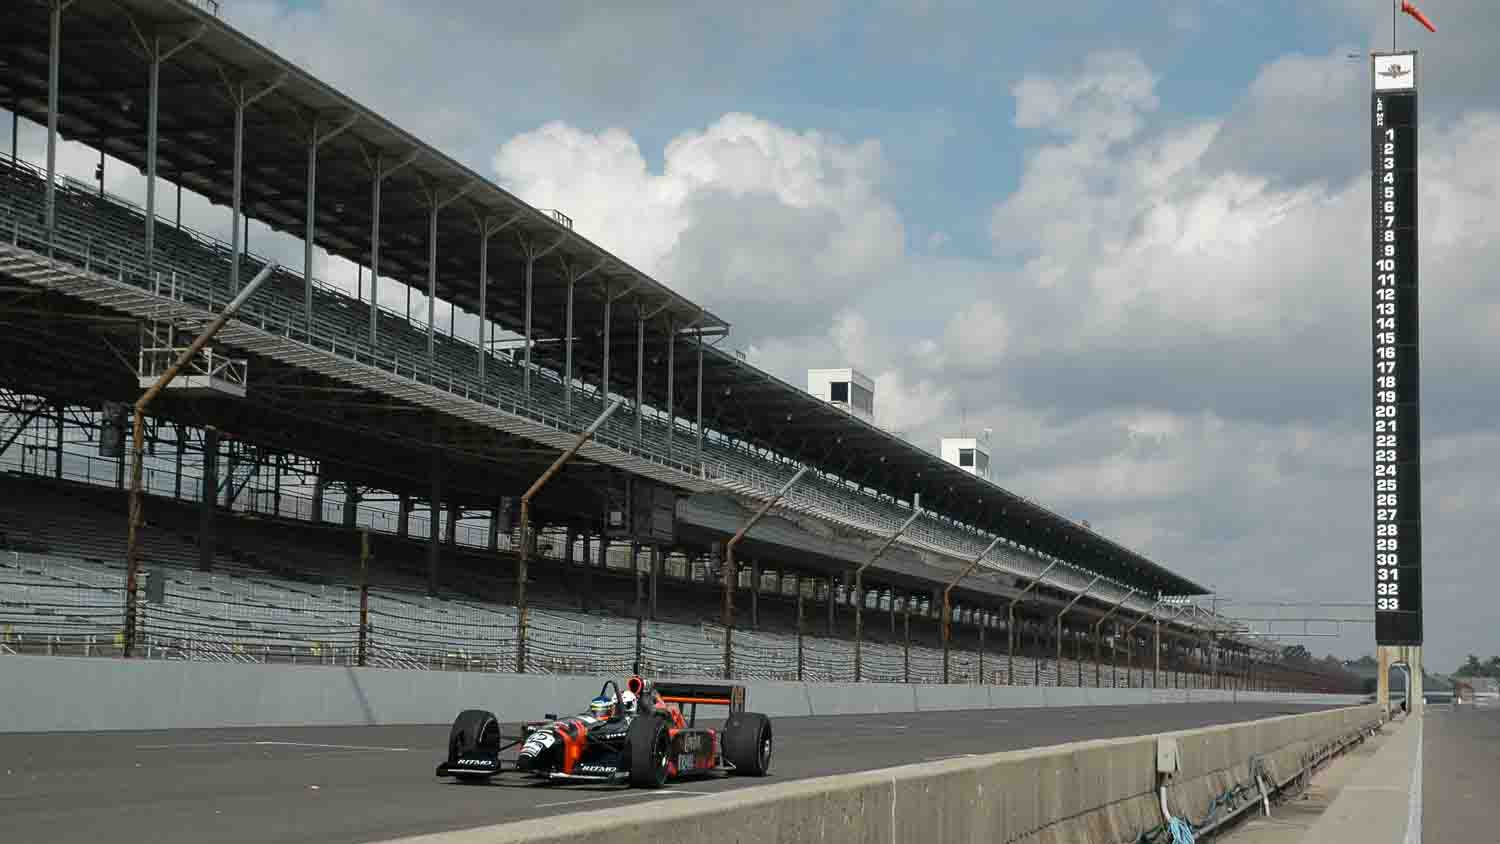 Racing in Indianapolis